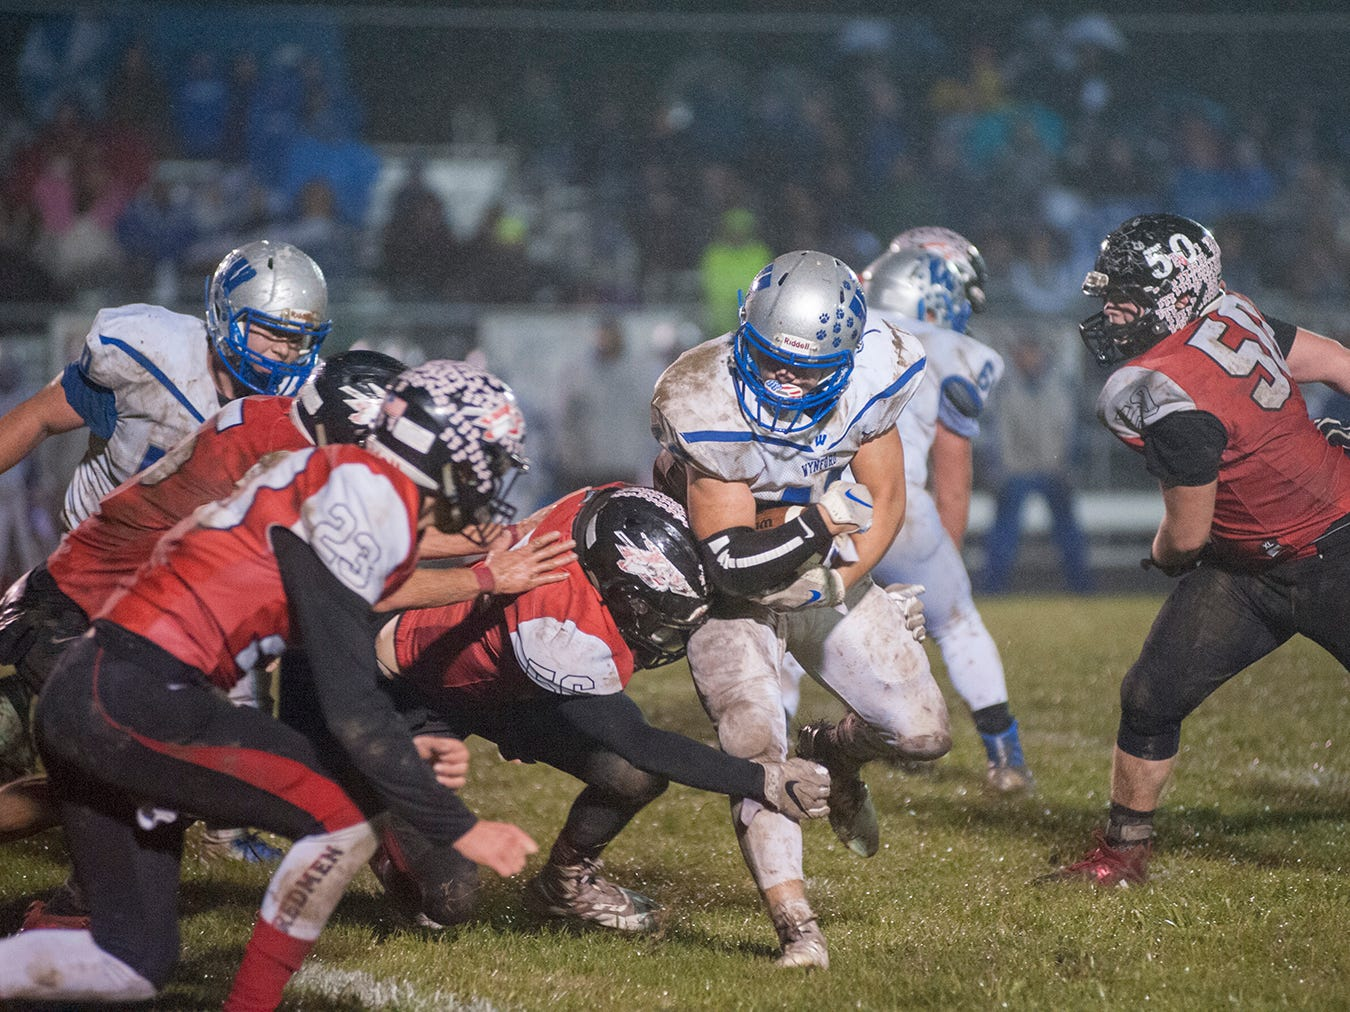 Bucyrus' Andrew Pifer attempts to wrap up Wynford's Kendall Blair.